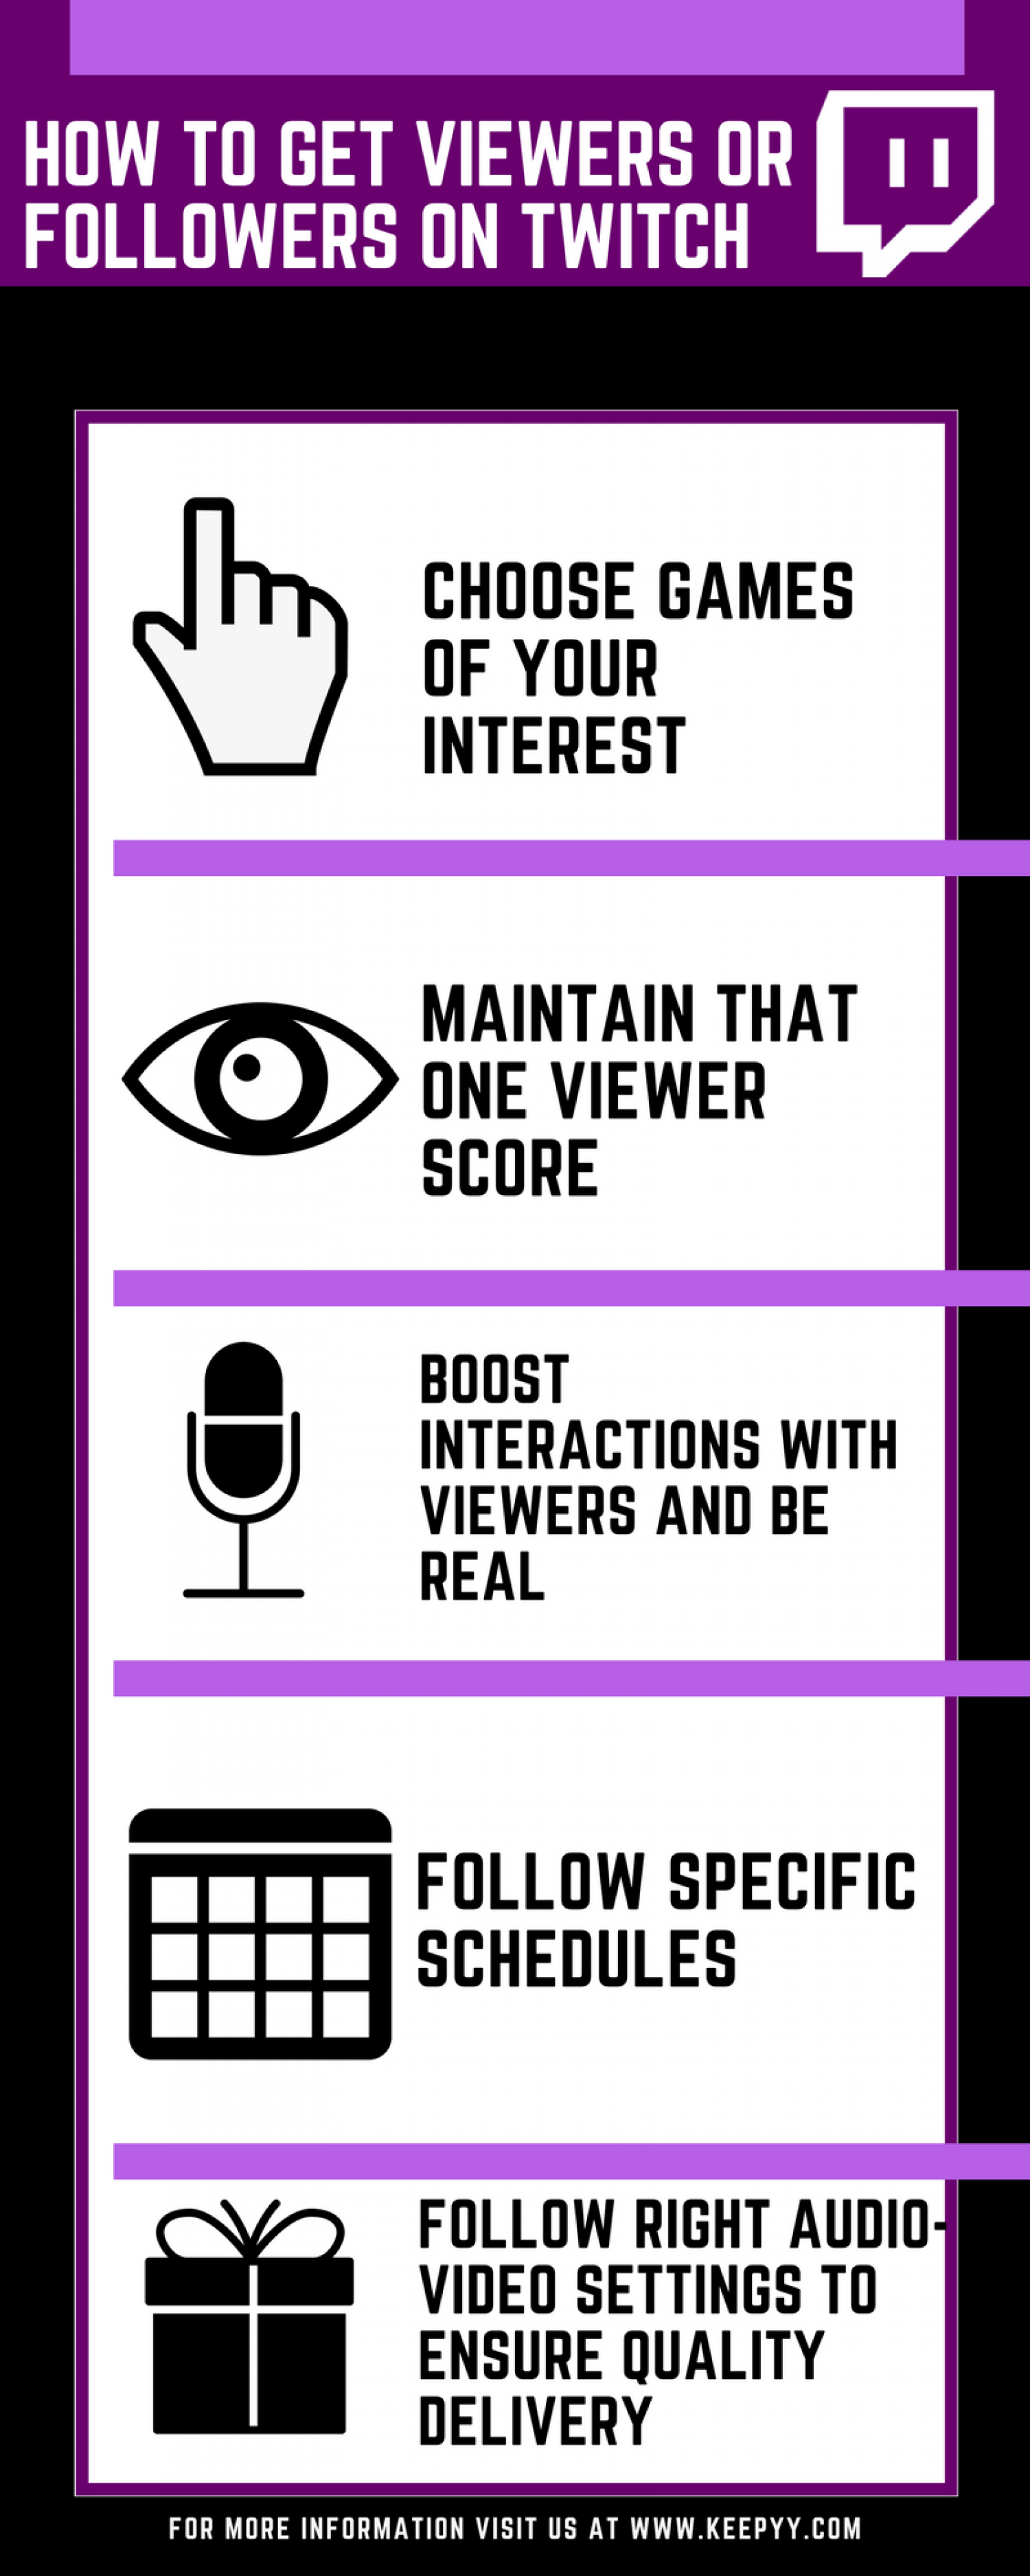 How to Get Viewers or Followers on Twitch Infographic